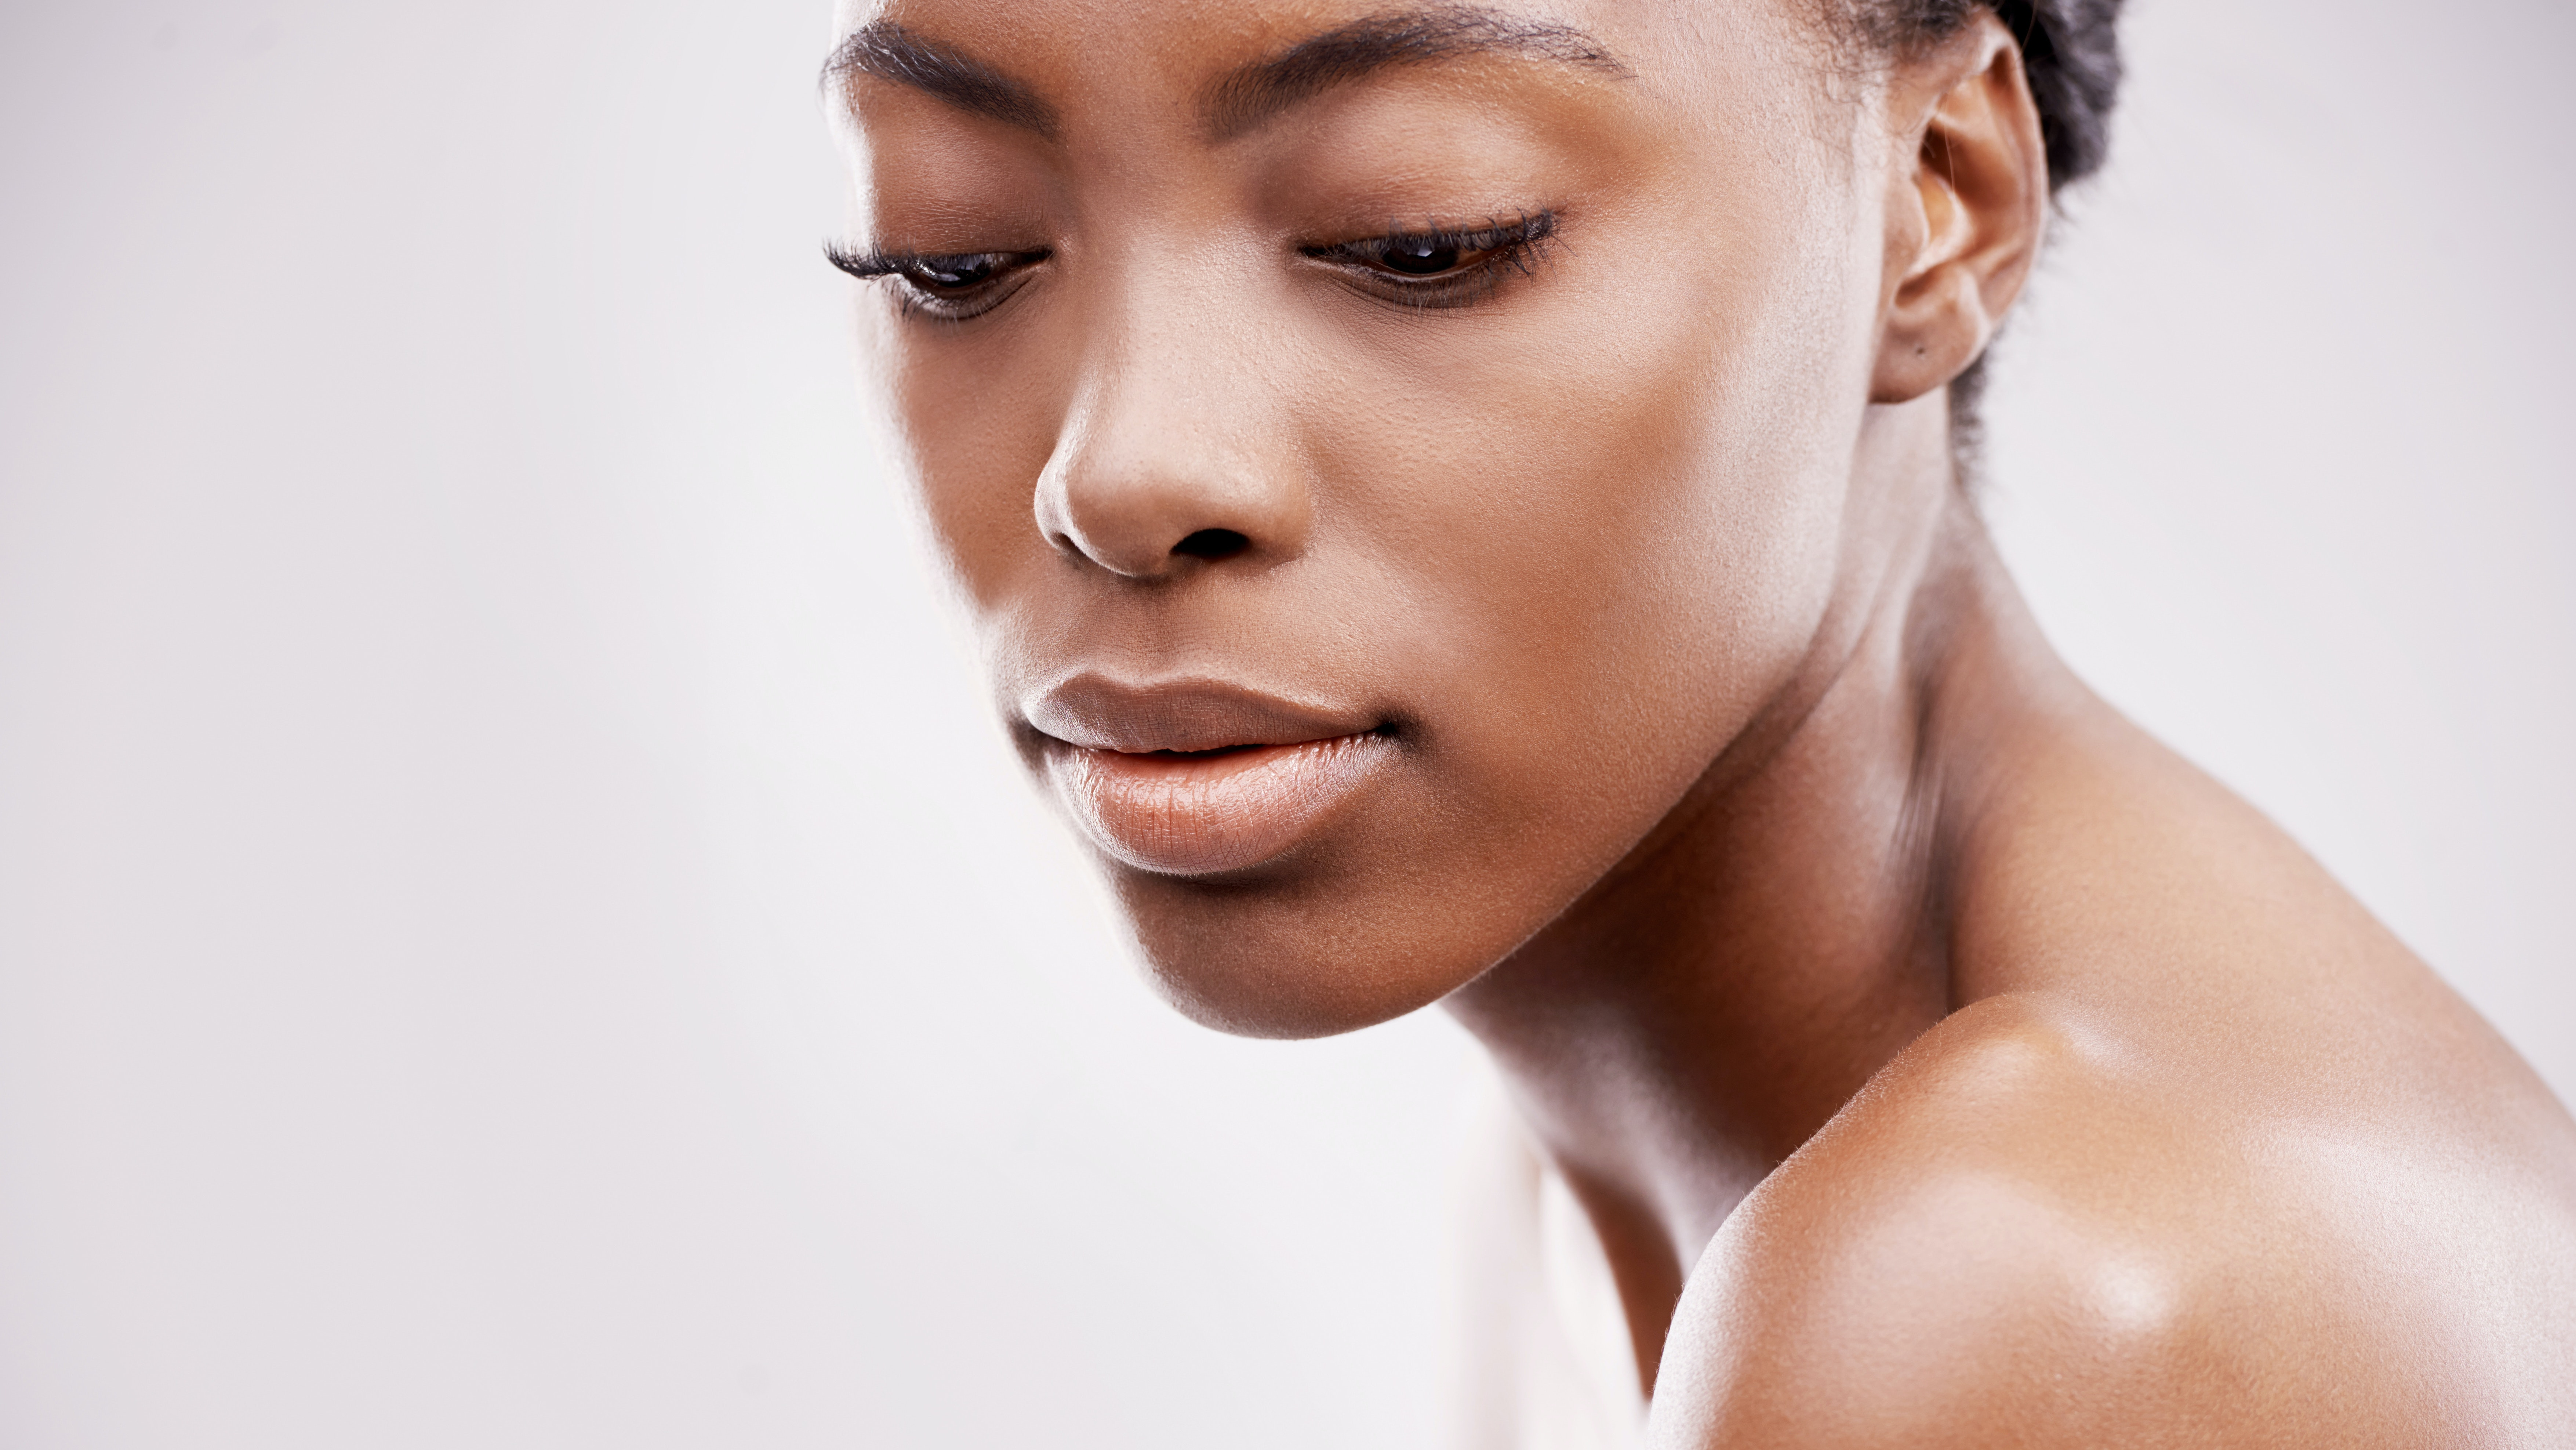 If You Have a Deeper Complexion and Want to Try a Chemical Peel, Read This First